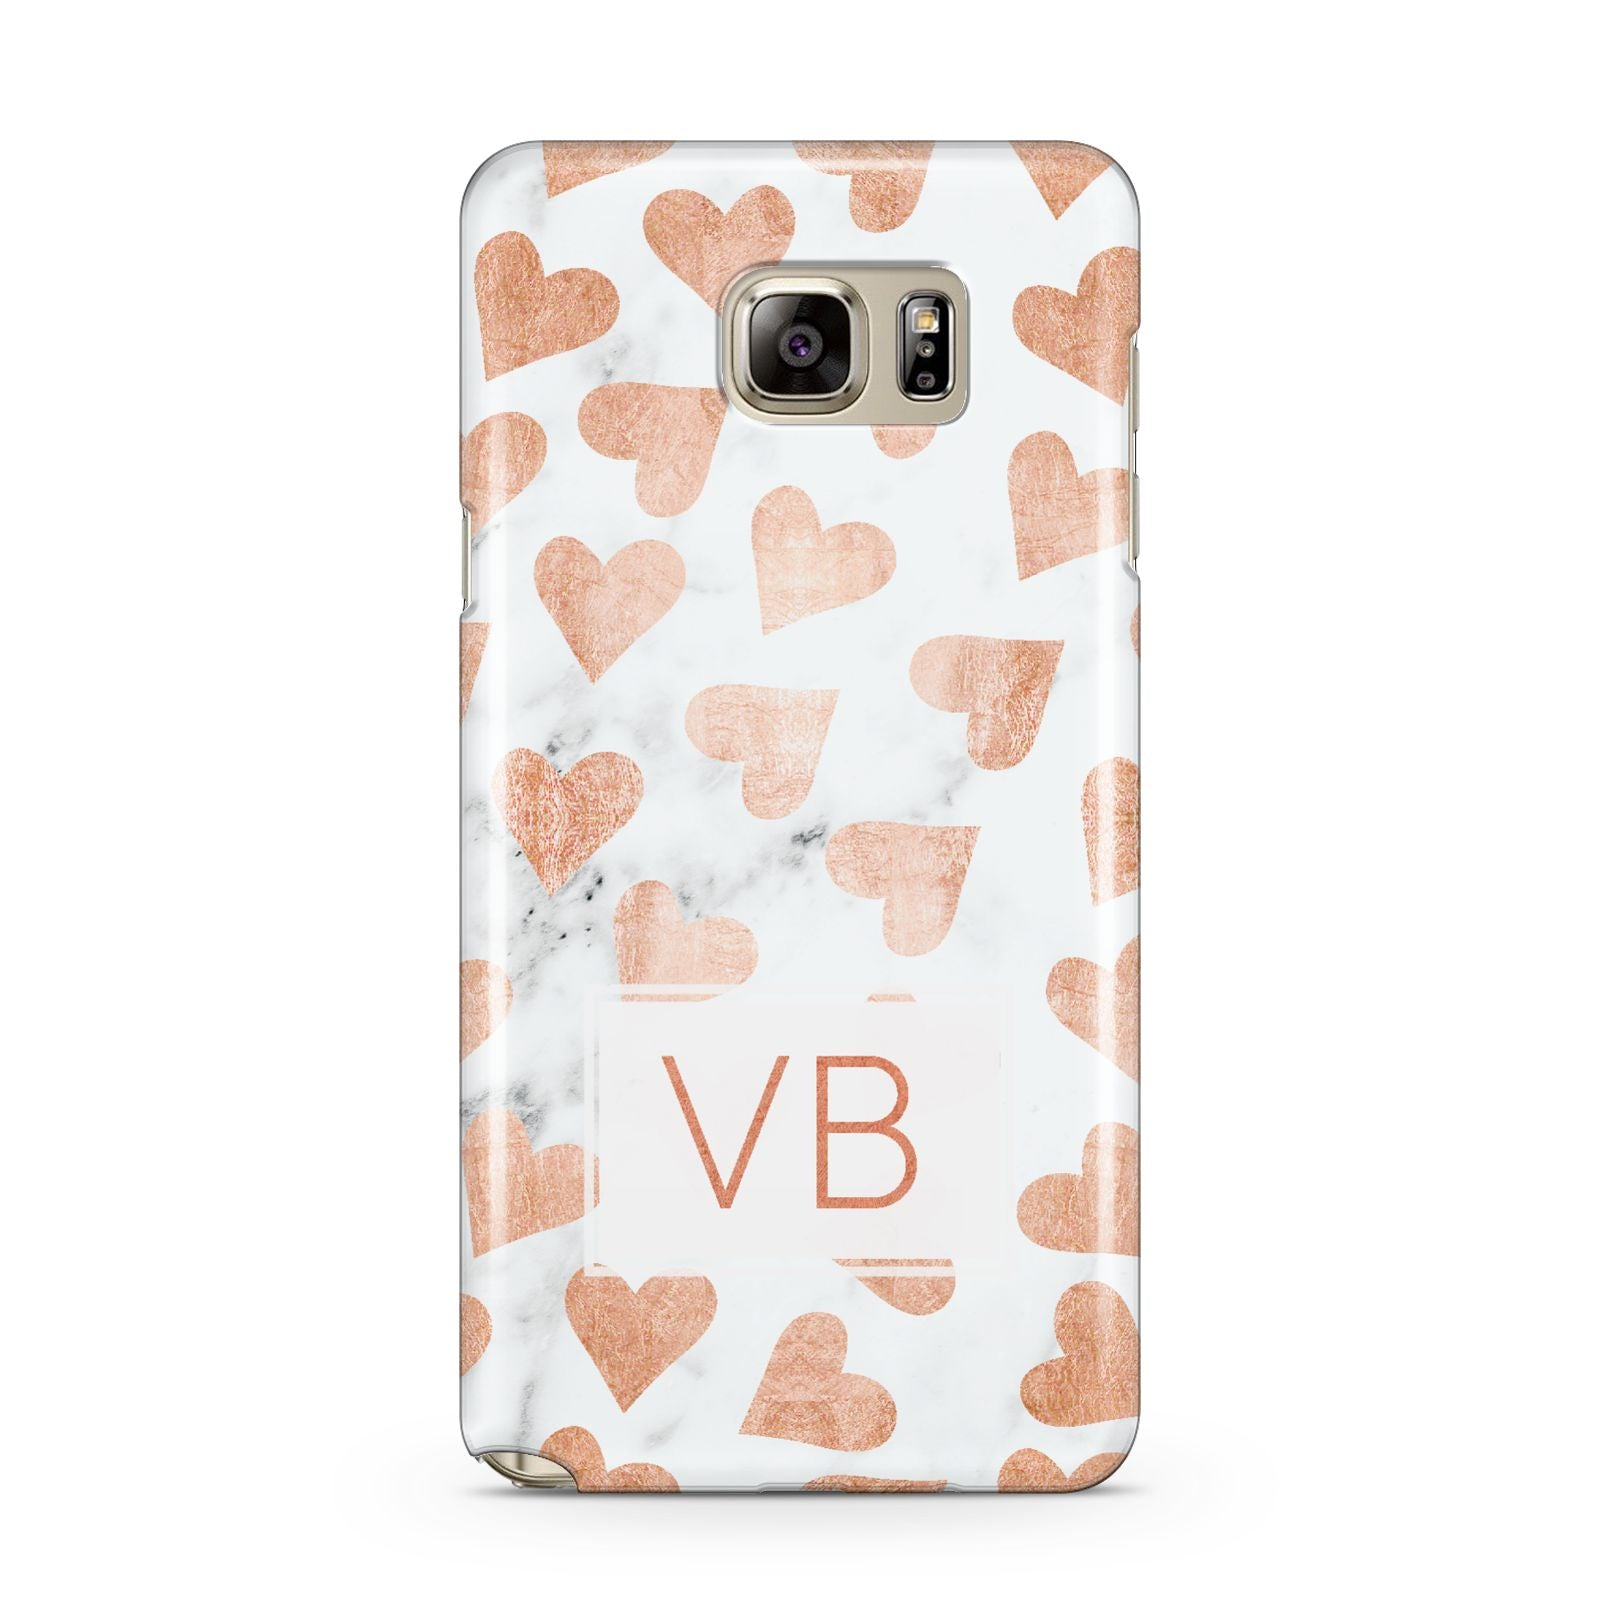 Personalised Heart Initialled Marble Samsung Galaxy Note 5 Case